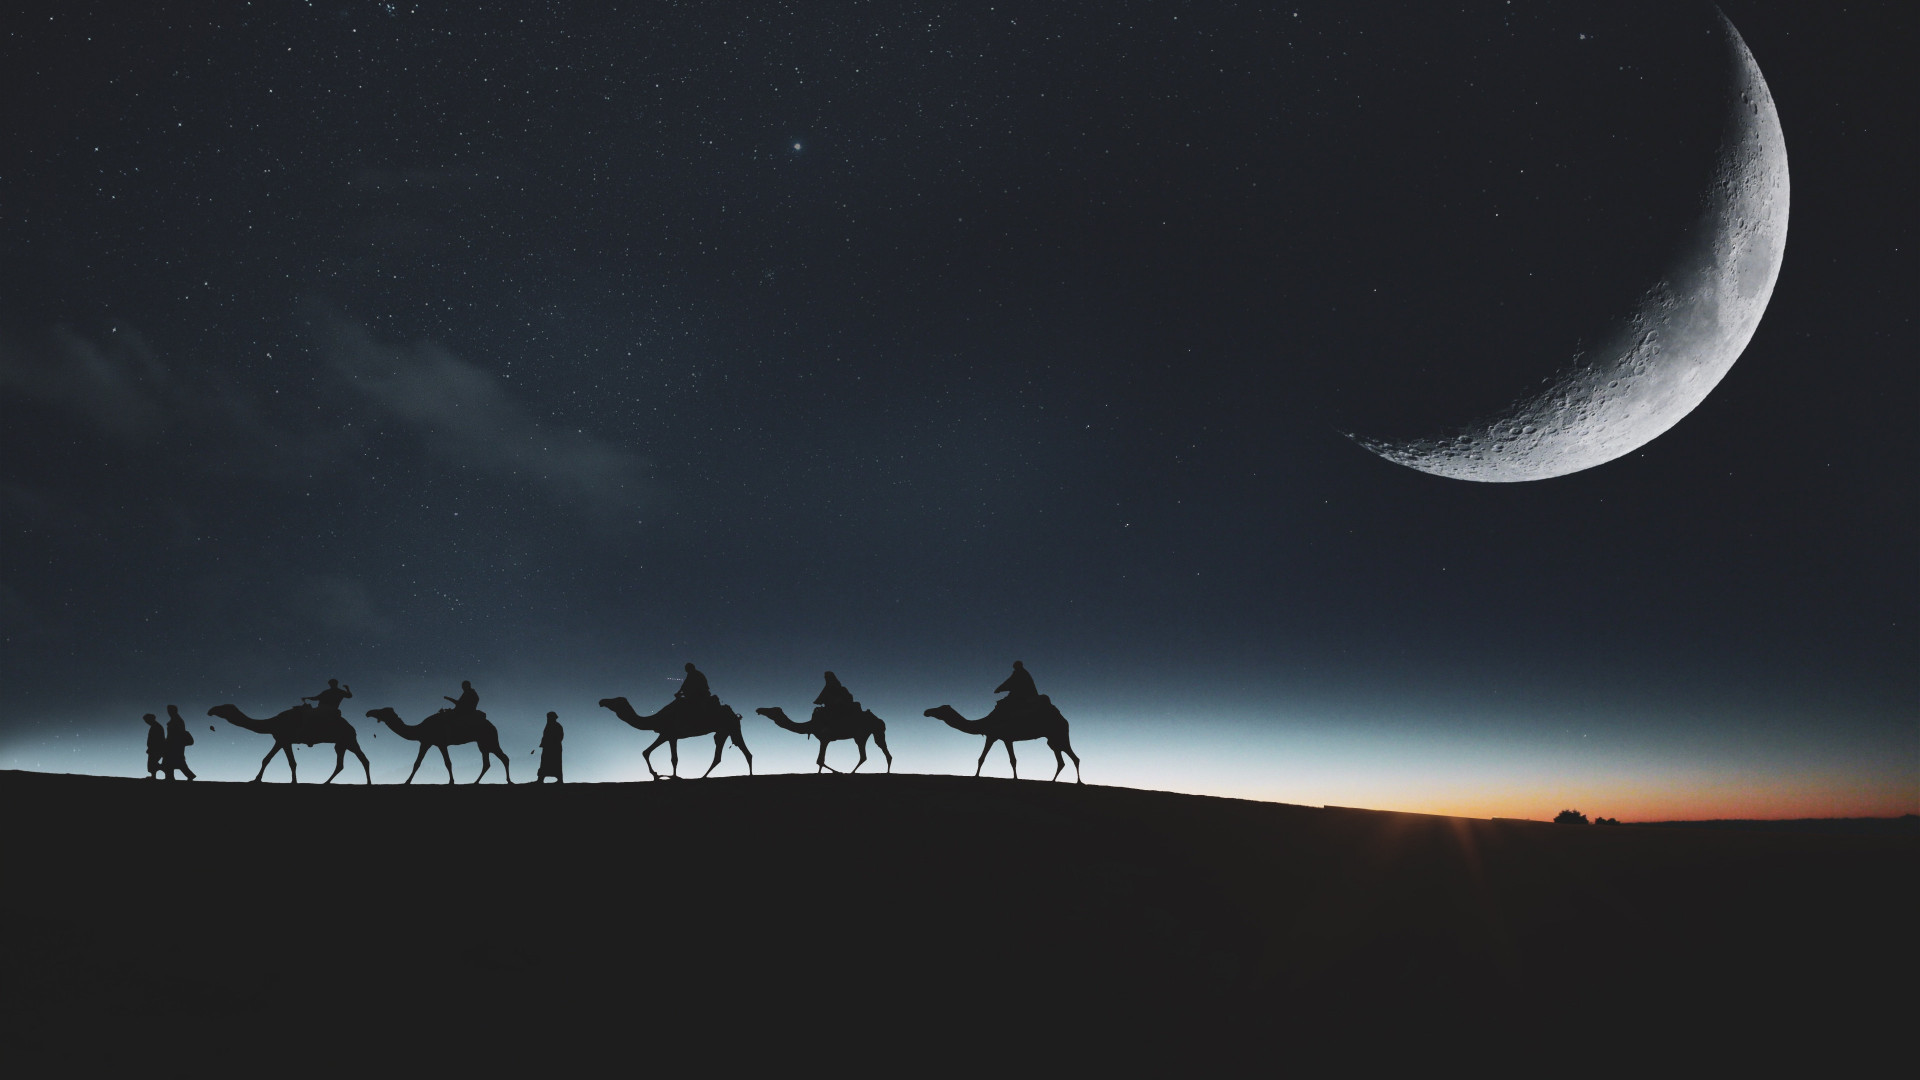 Traveling through desert on camels wallpaper 1920x1080